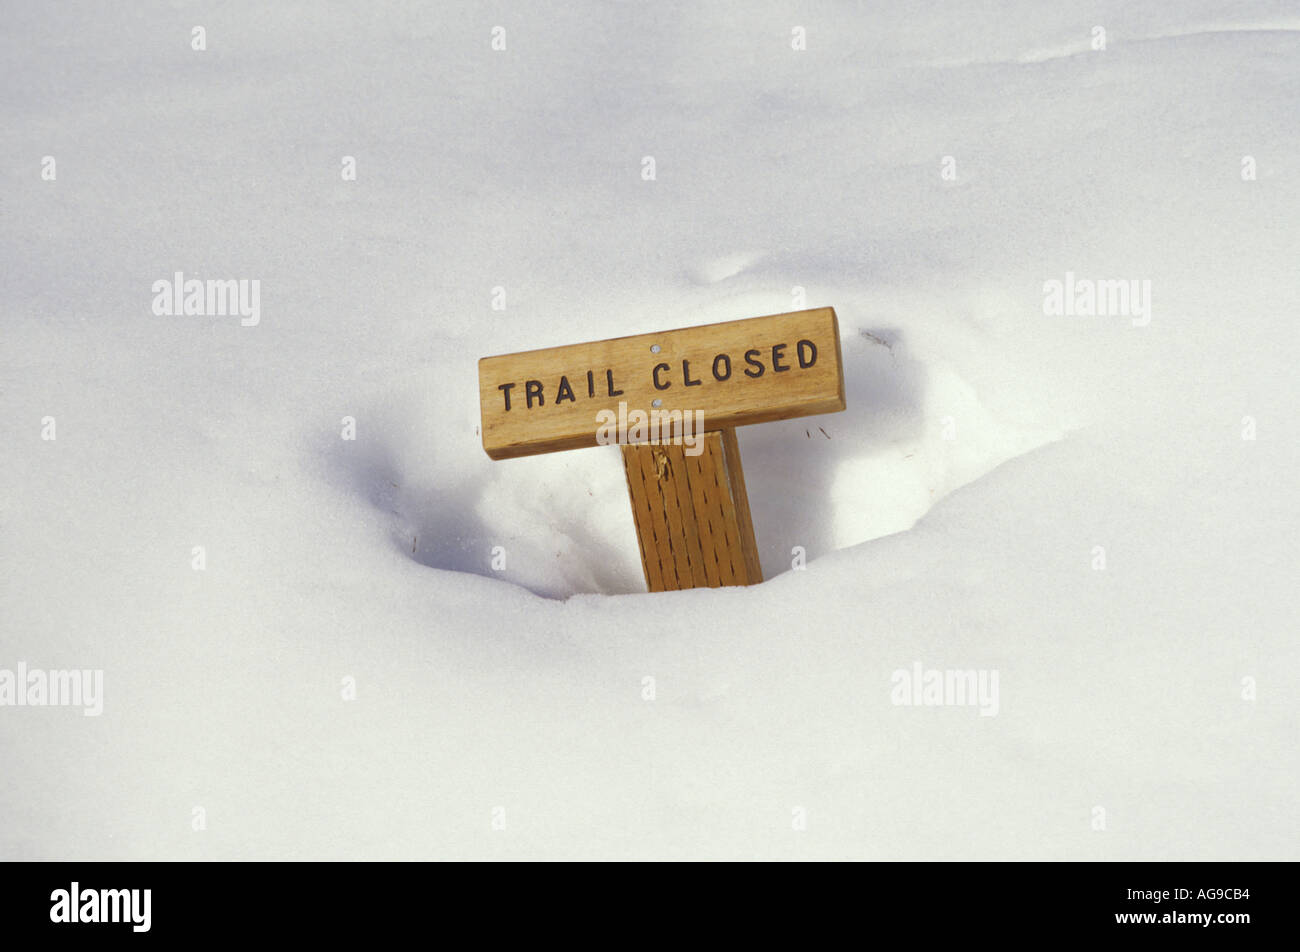 Trail Closed sign buried in snow Park Butte Lookout Trail Mt Baker National Recreation Area Cascade Mountains Washington - Stock Image